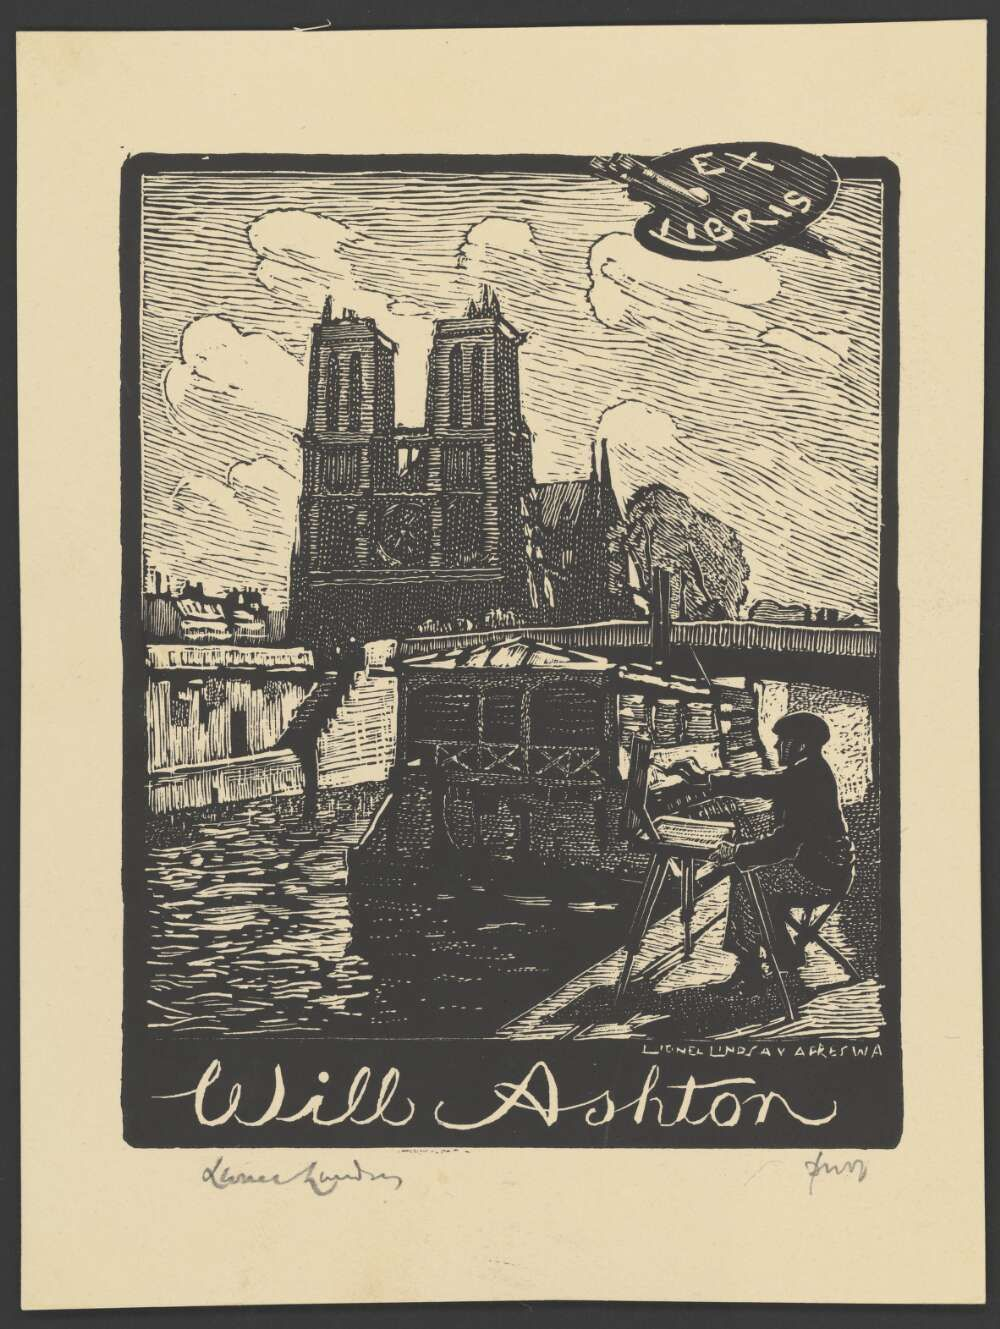 bookplate for Will Ashton - by Lionel Lindsay, 1950